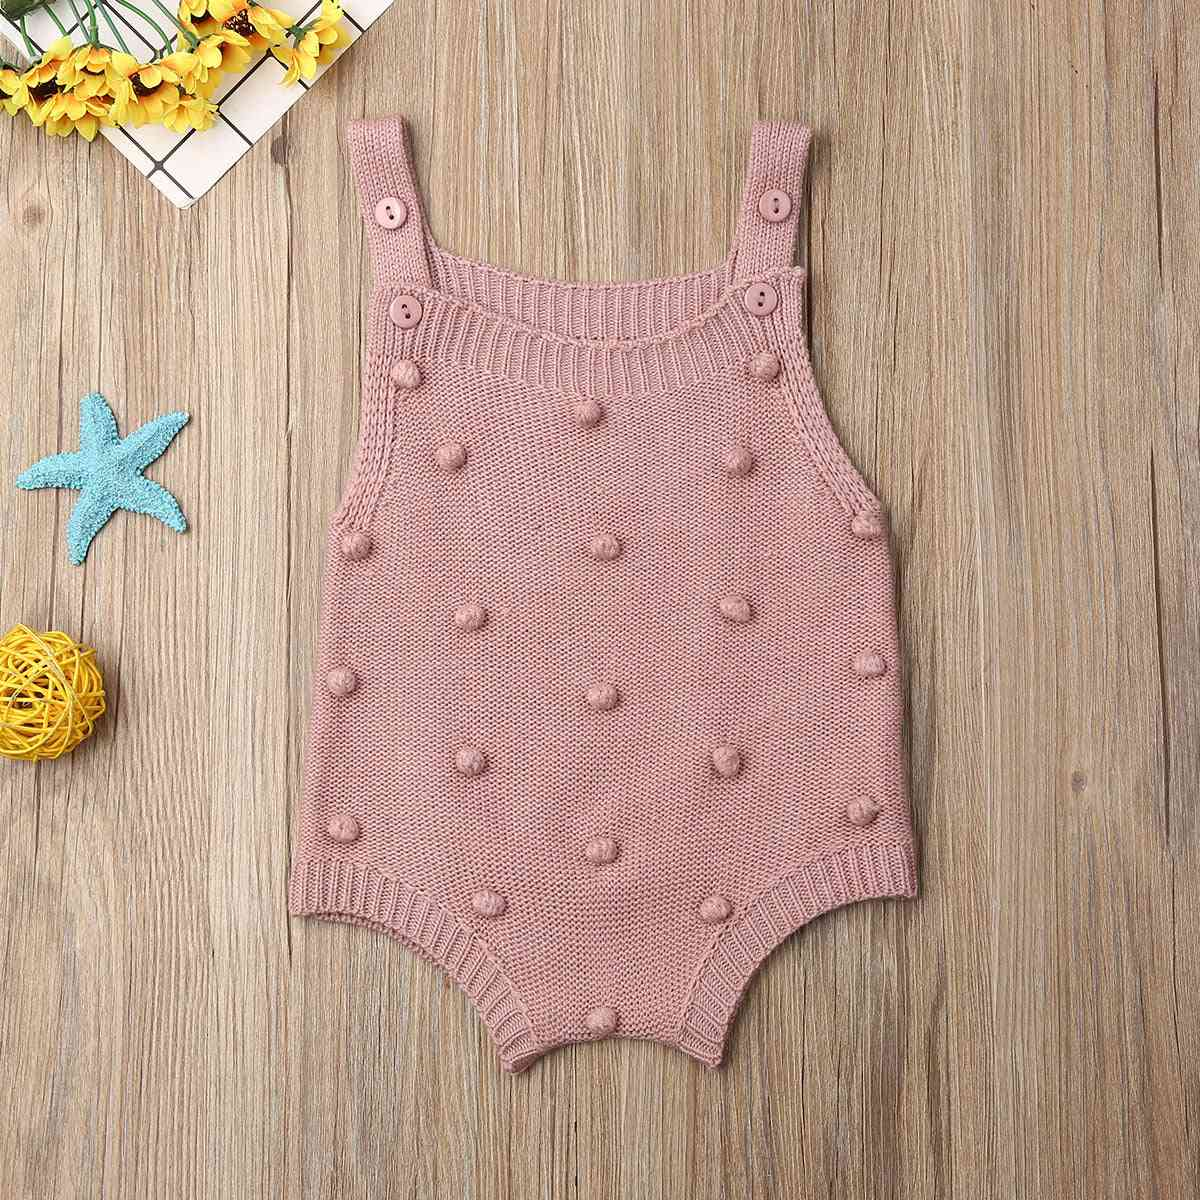 Newborn Baby Knit Dots Jumpsuit - Solid Bodysuit Cotton Sleeveless Outfit